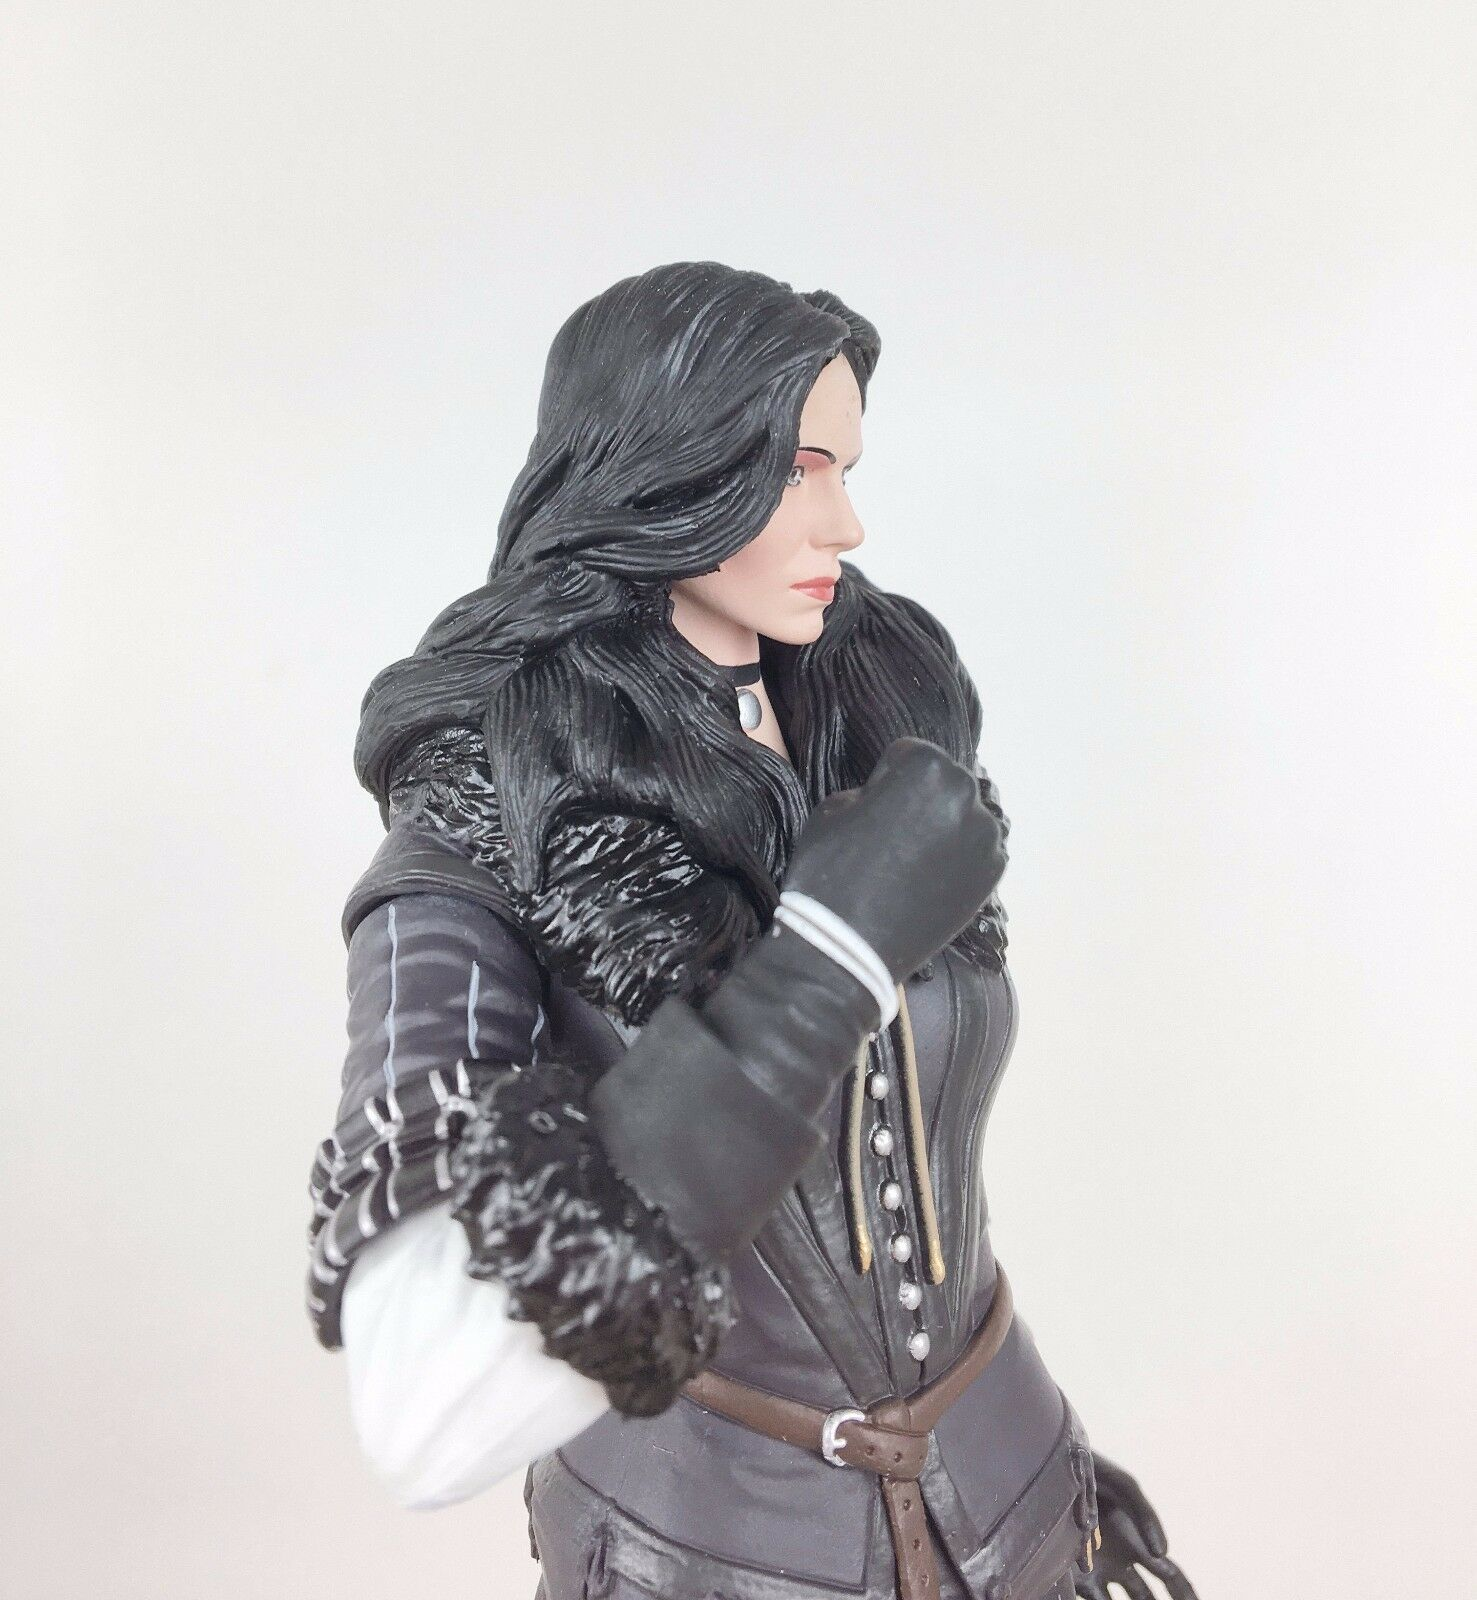 Dark Dark Dark Horse - The Witcher 3 - Yennefer - Officielle a52f91